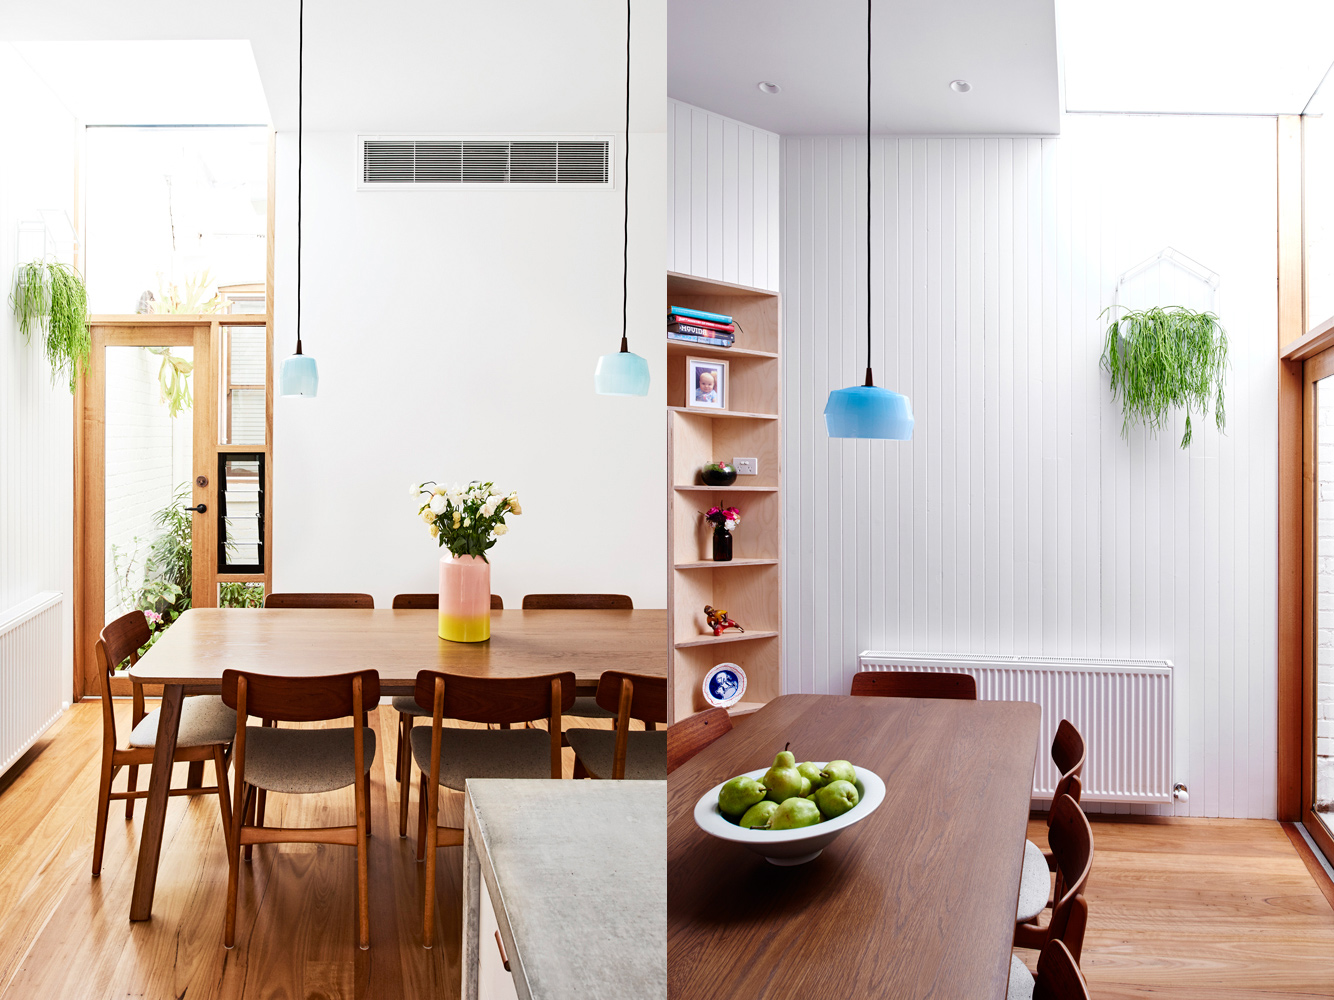 High House - Local Dining Room Timber Detailing - Dan Gayfer Design - Interior Archive